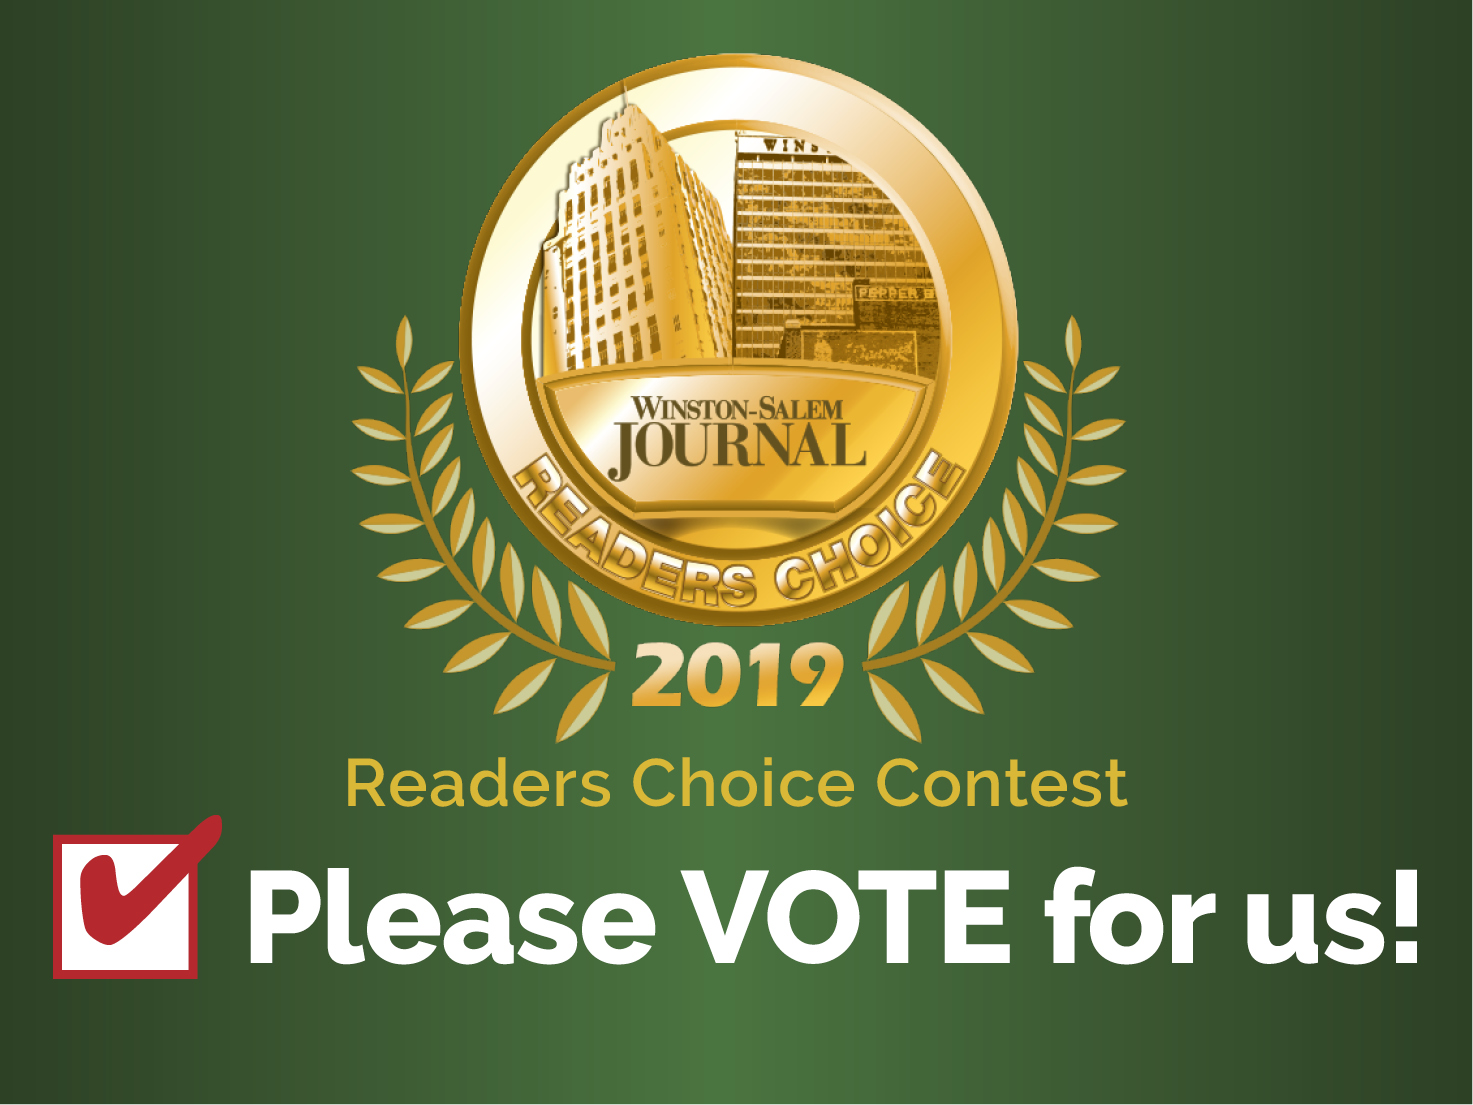 WS Journal 2019 Readers Choice Contest